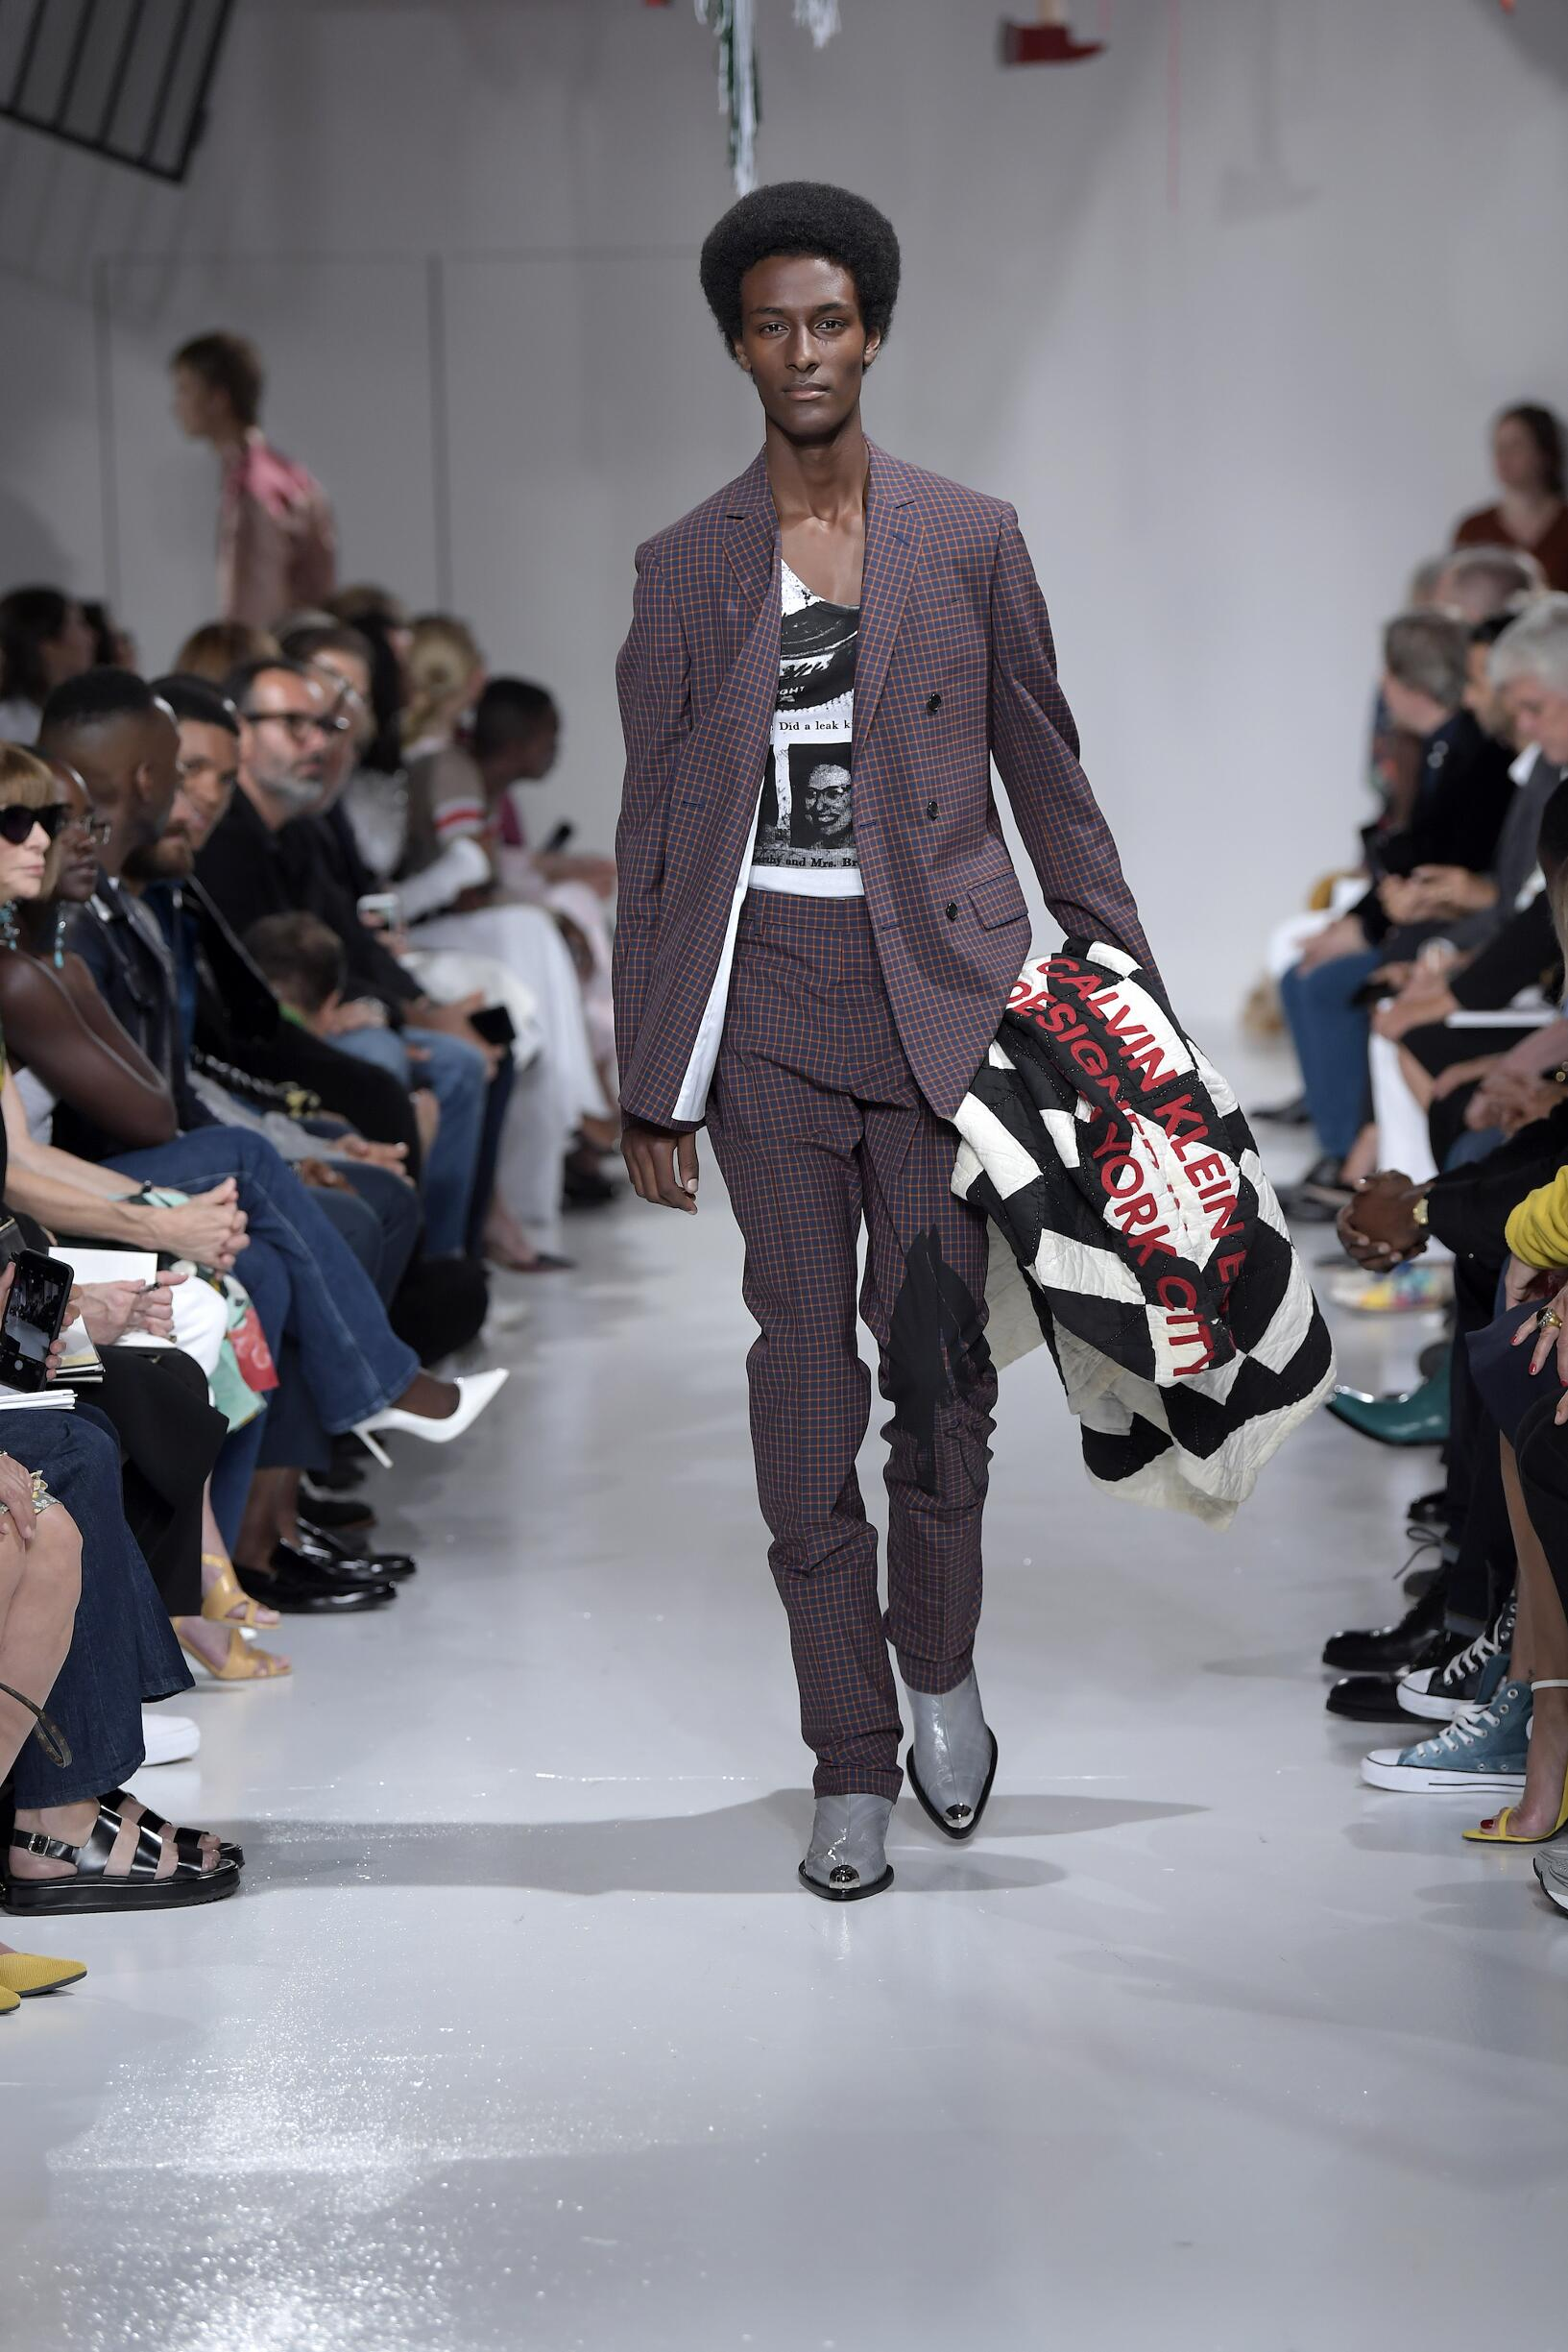 Calvin Klein 205W39NYC Spring Summer 2018 Mens Collection New York Fashion Week